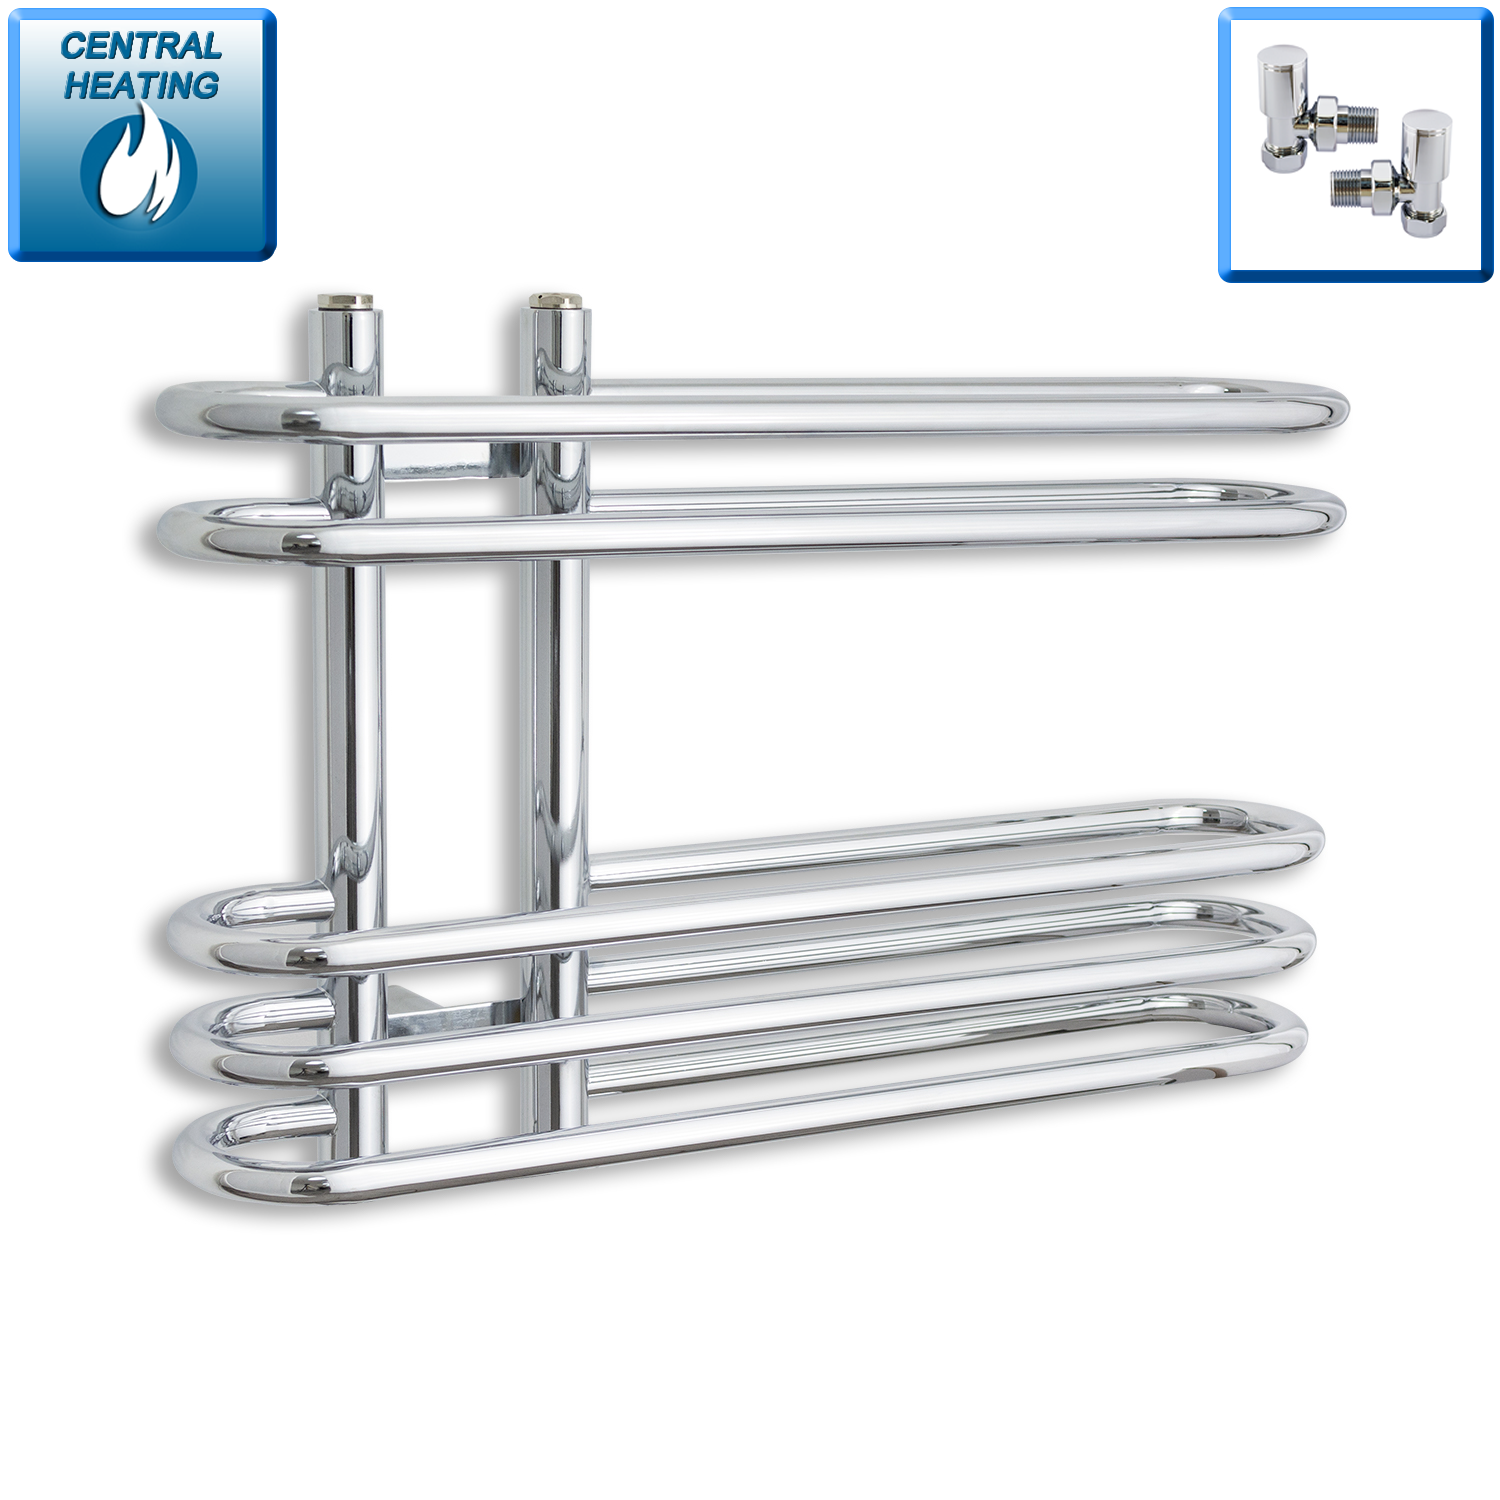 Salina 400 mm High x 600 mm Wide Designer Heated Chrome Towel Rail Radiator Central Heating